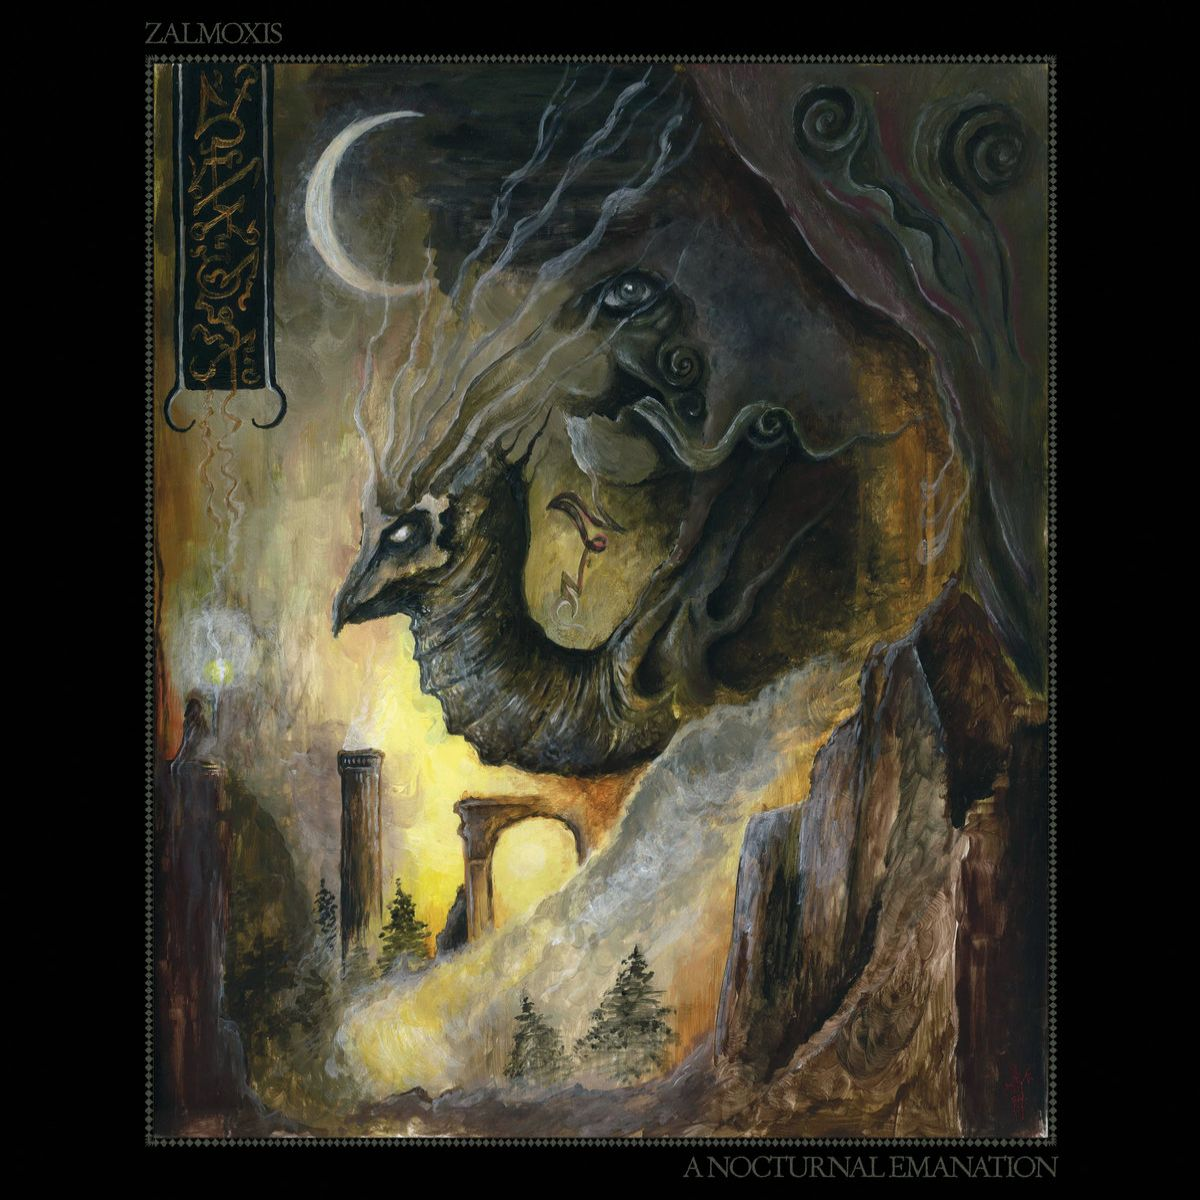 Reviews for Zalmoxis - A Nocturnal Emanation